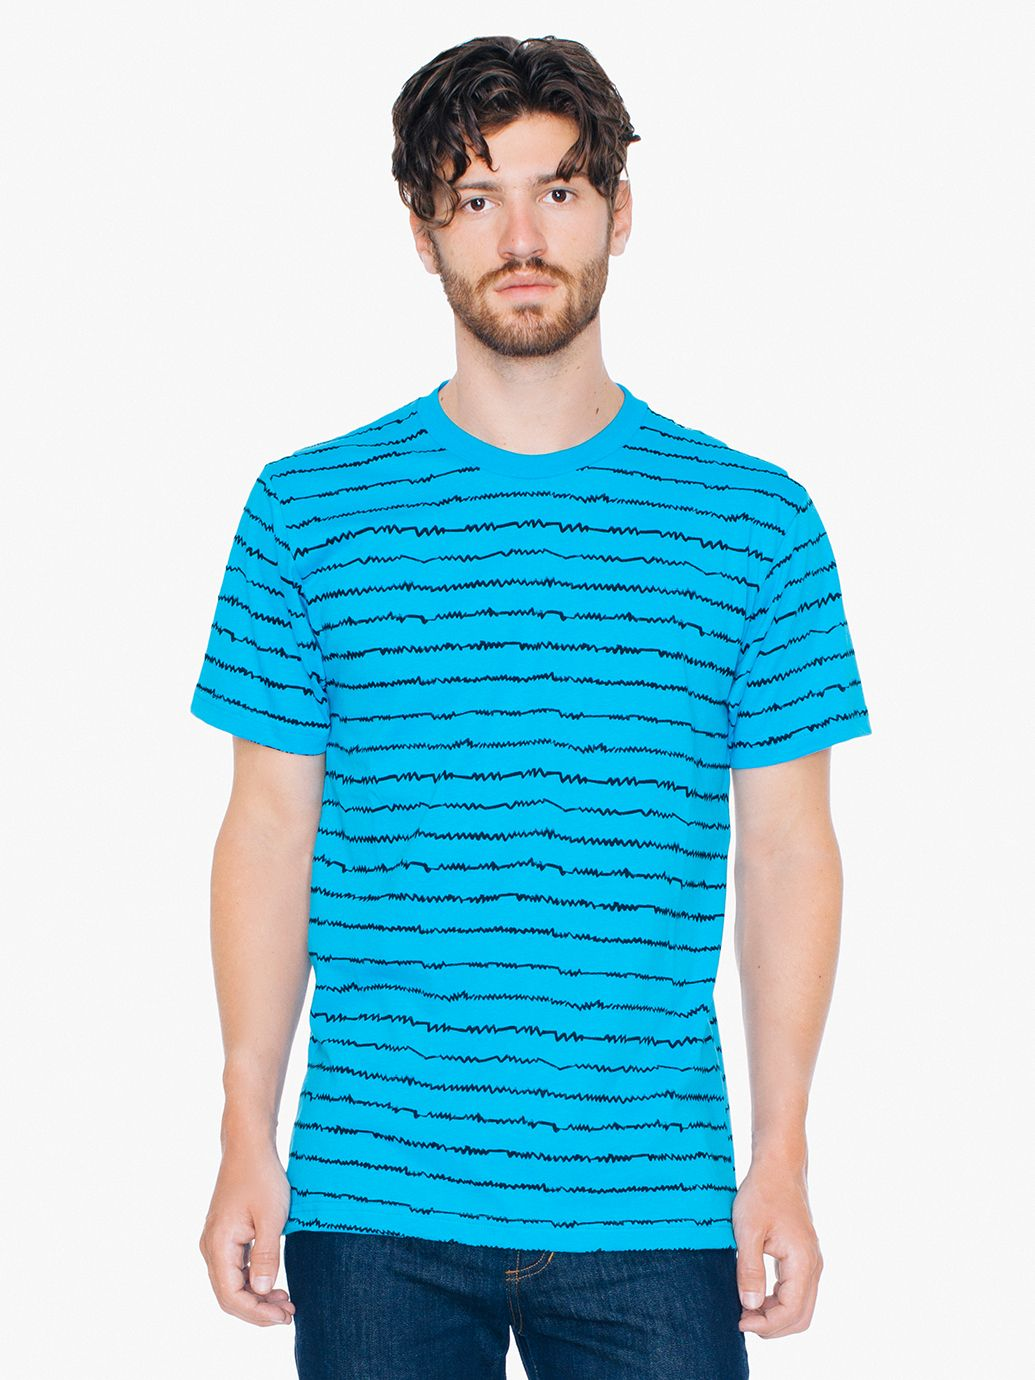 http://s7d9.scene7.com/is/image/AmericanApparel/hj400p_hawaiiancrush_blackzigzag?defaultImage=/notavail